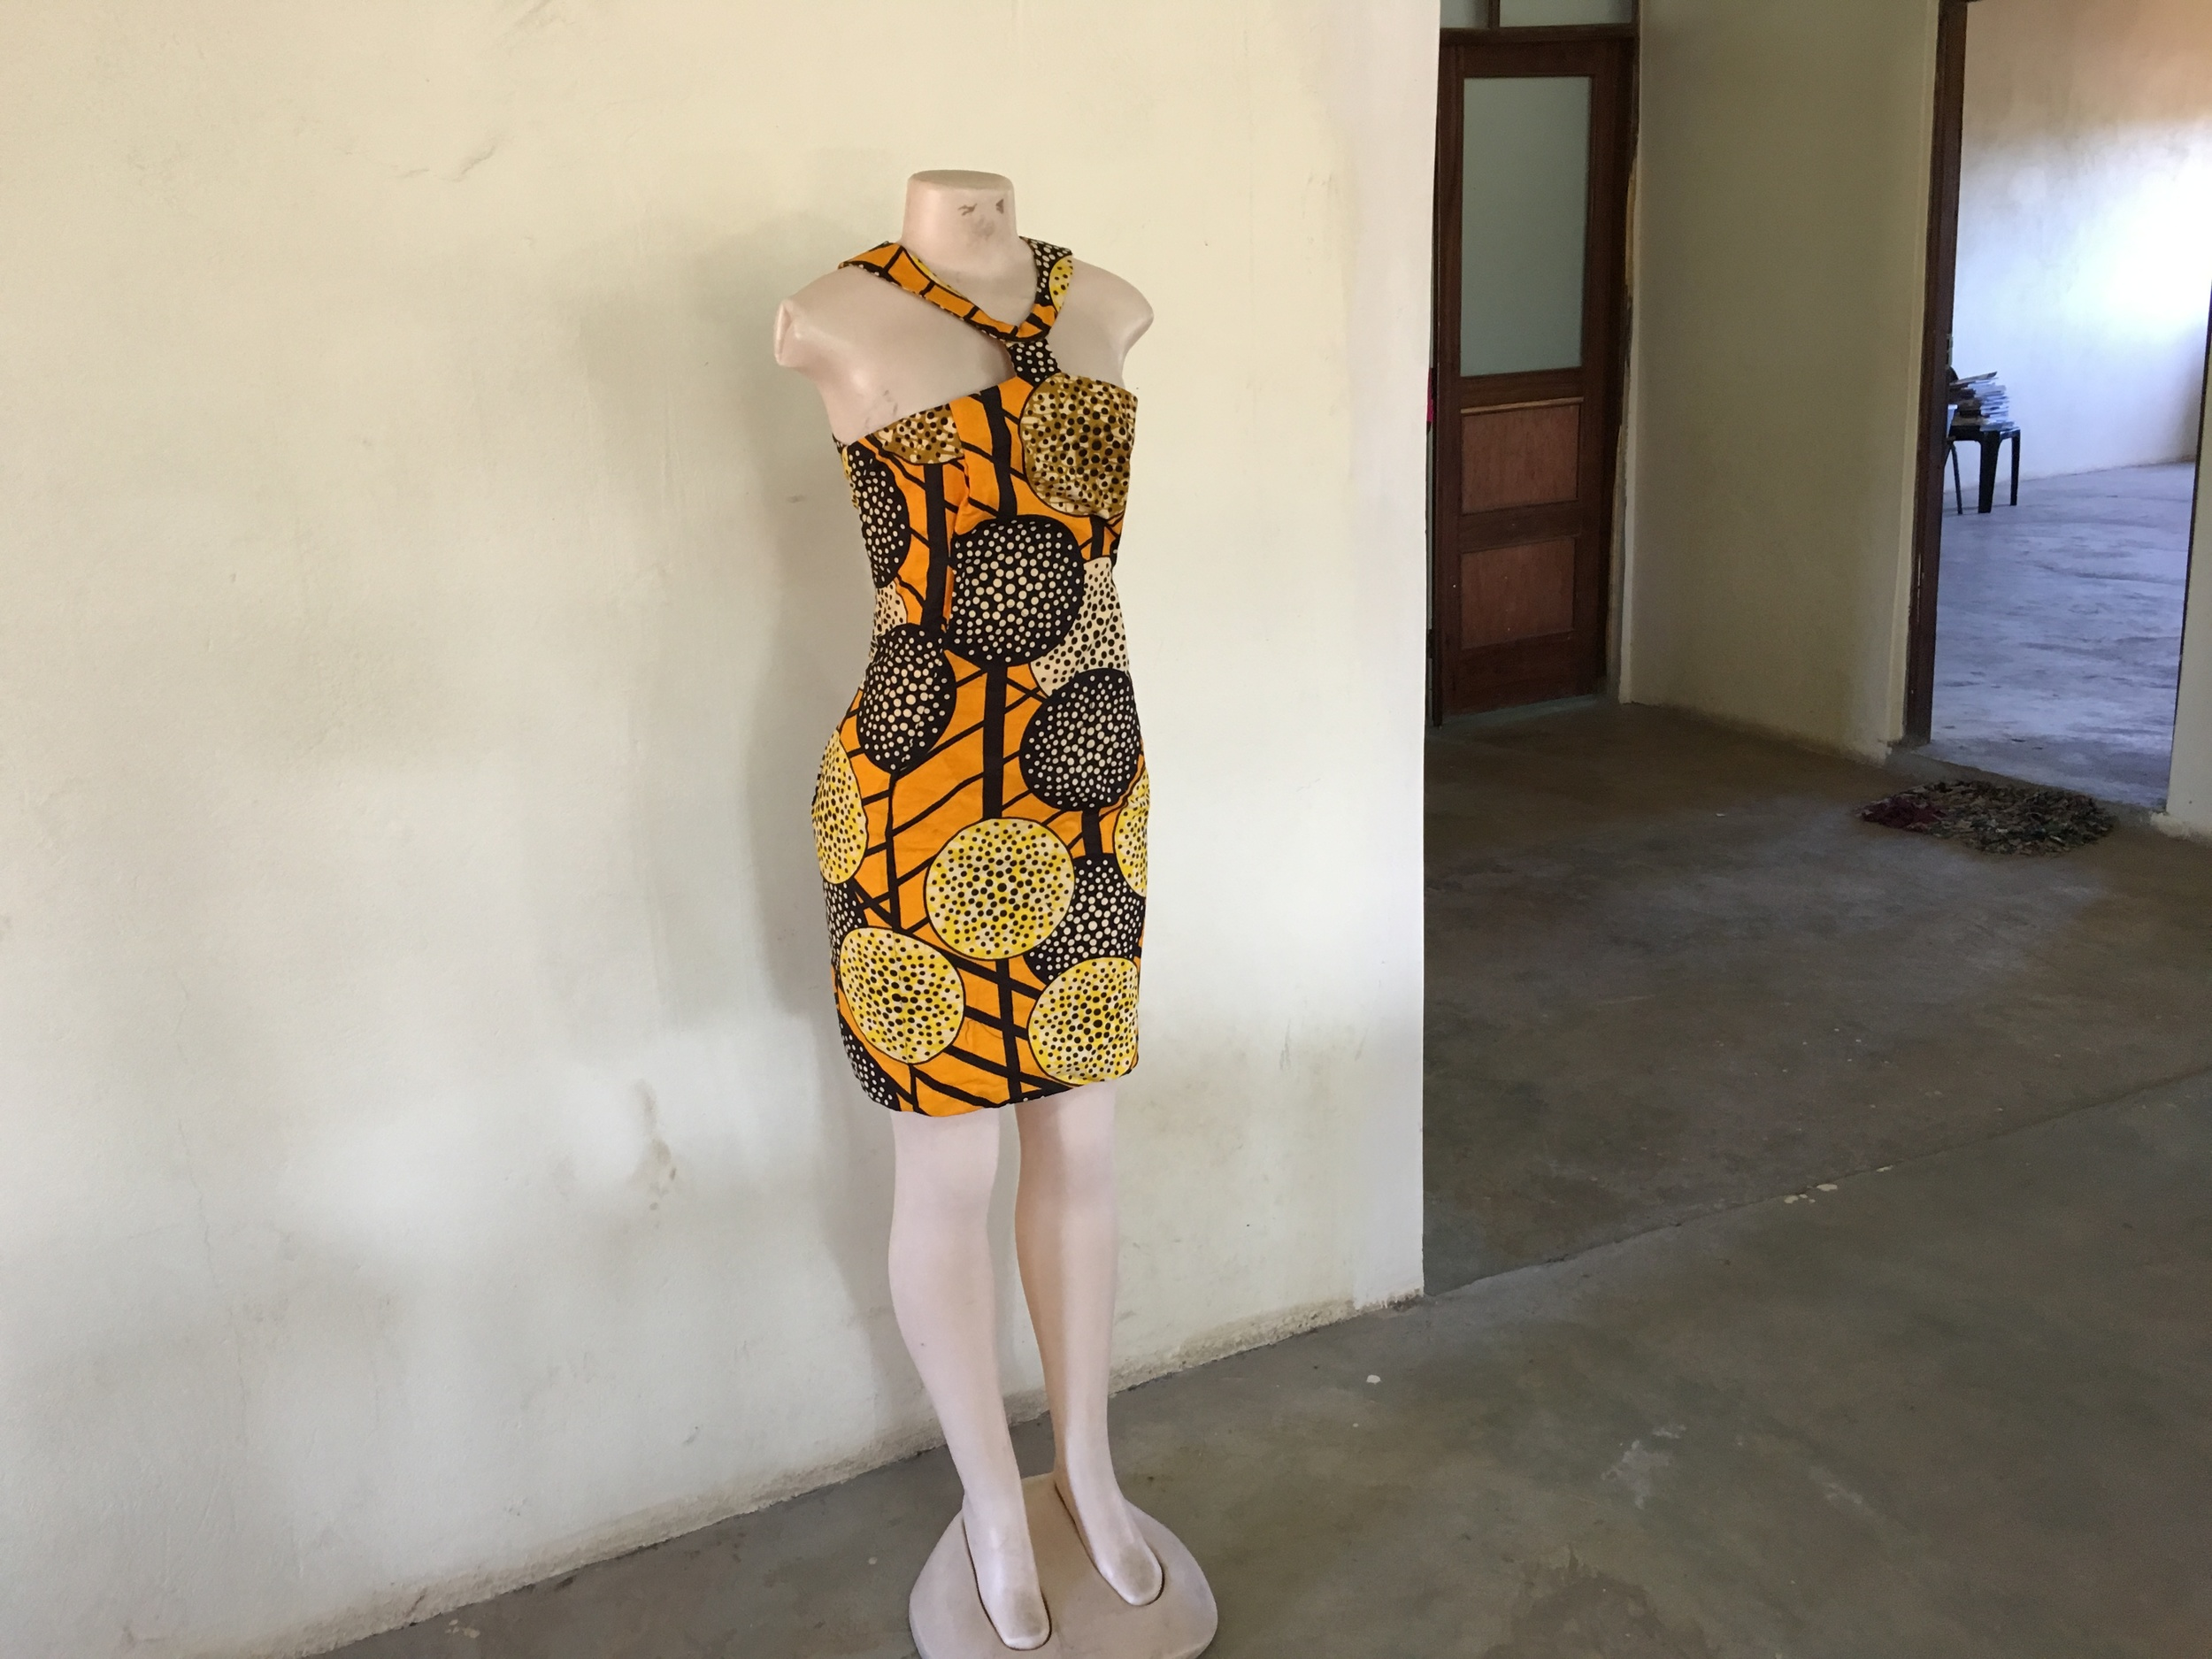 A dress made by a student of sewing classes in Boane.